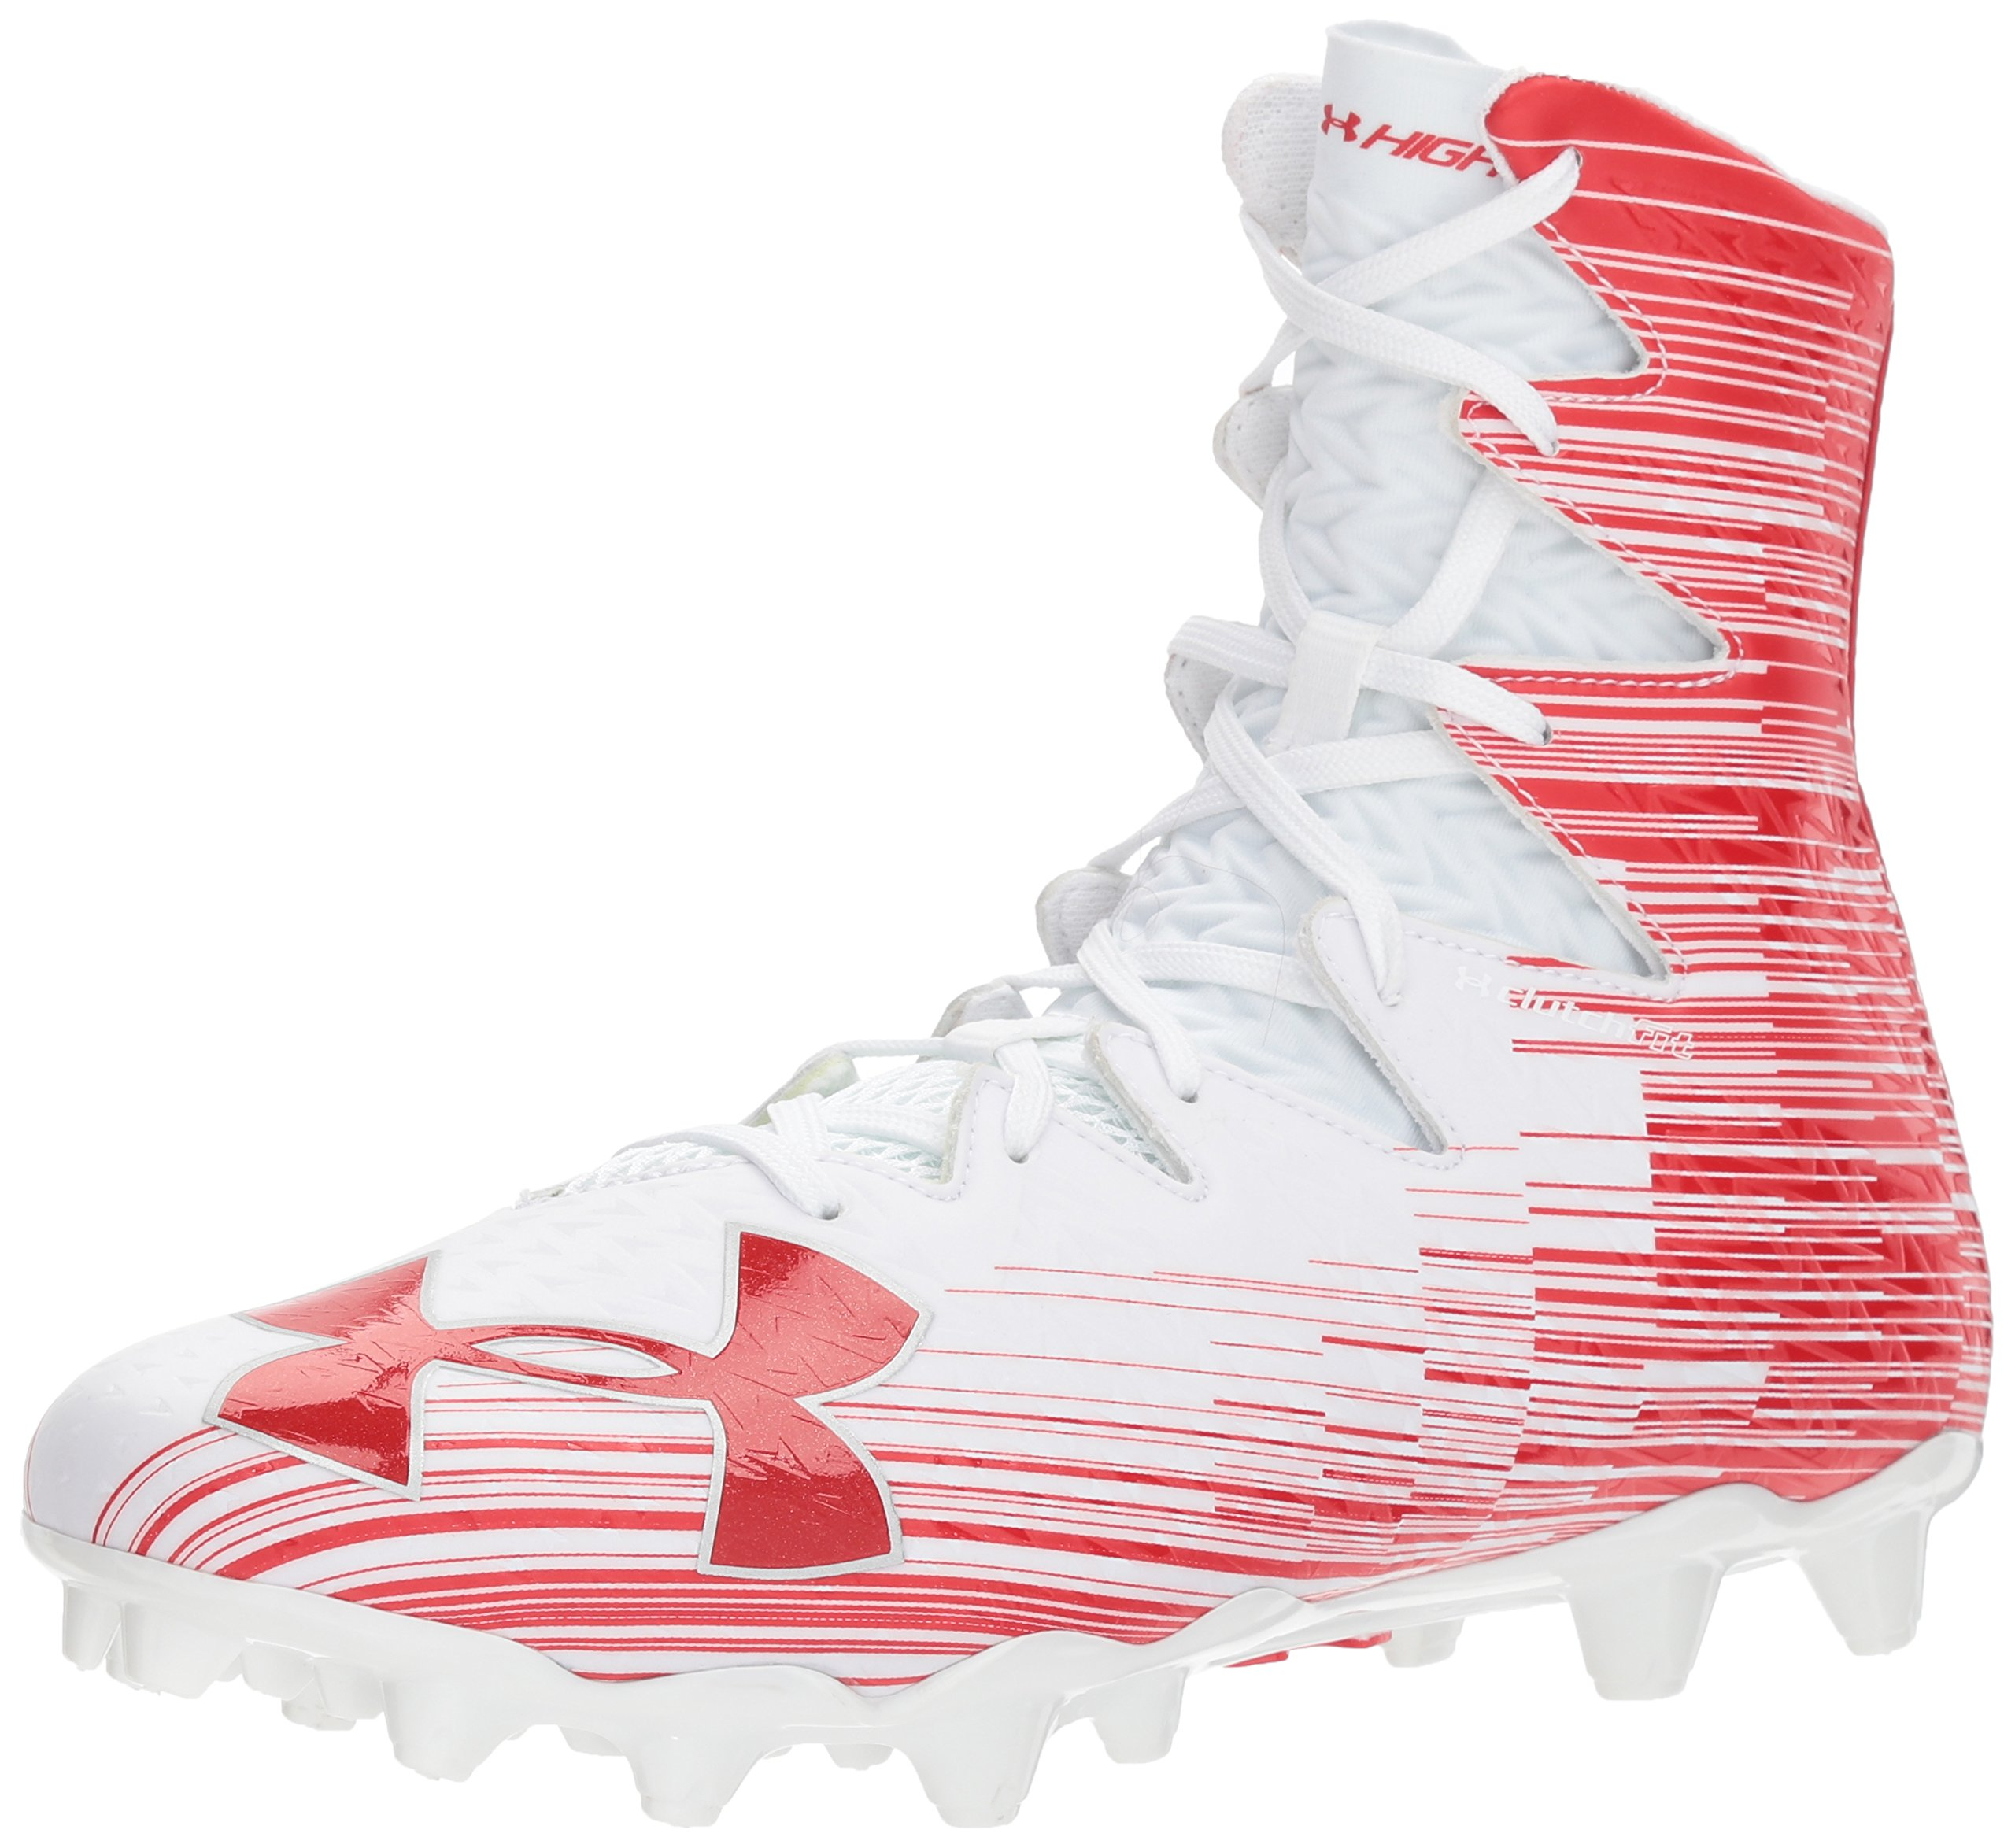 Under Armour Men's Highlight M.C. Lacrosse Shoe, White (161)/Red, 16 by Under Armour